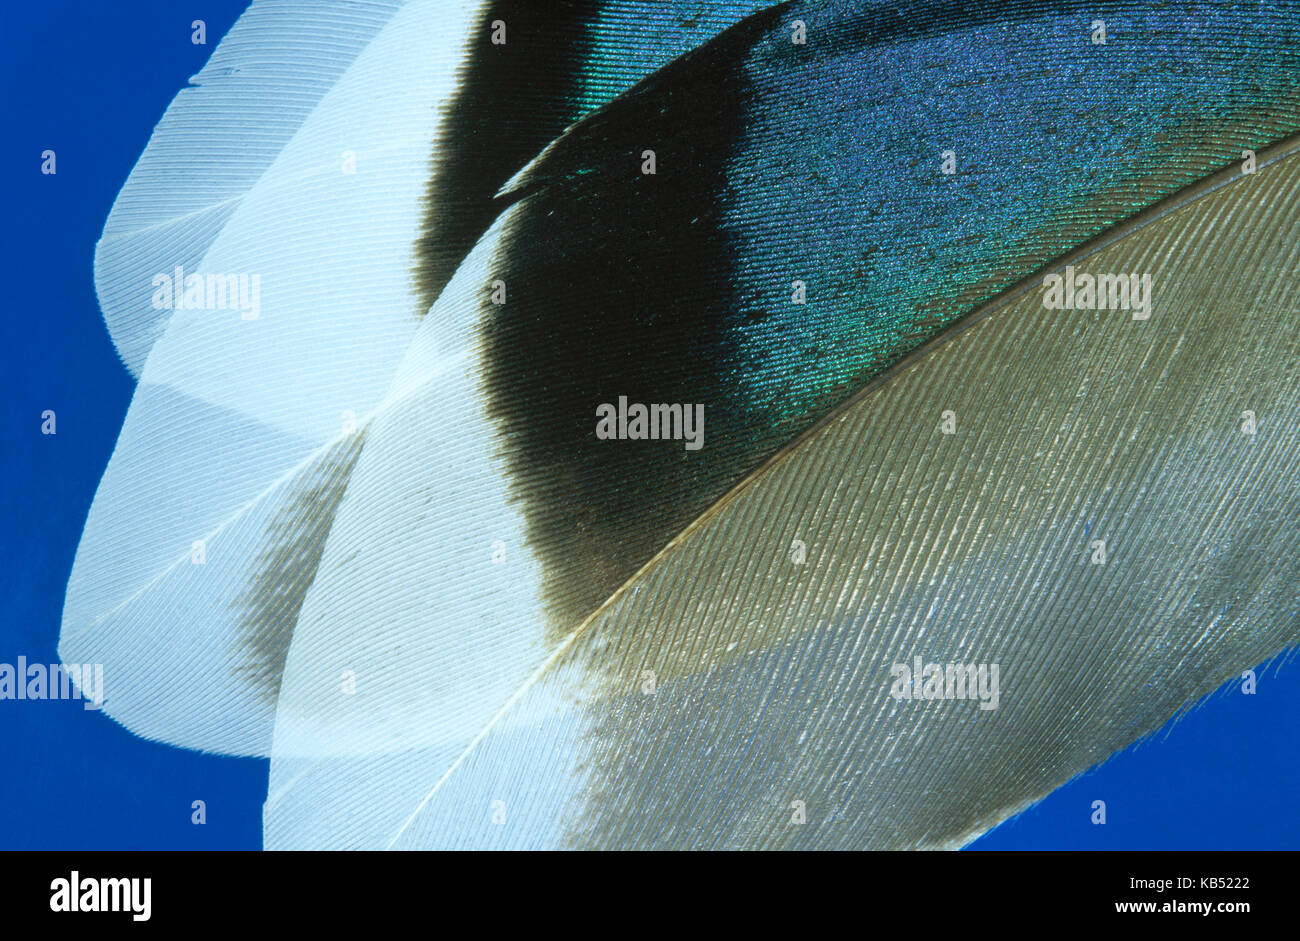 Mallard (Anas platyrhynchos) close up of feathers, Europe, Europe - Stock Image